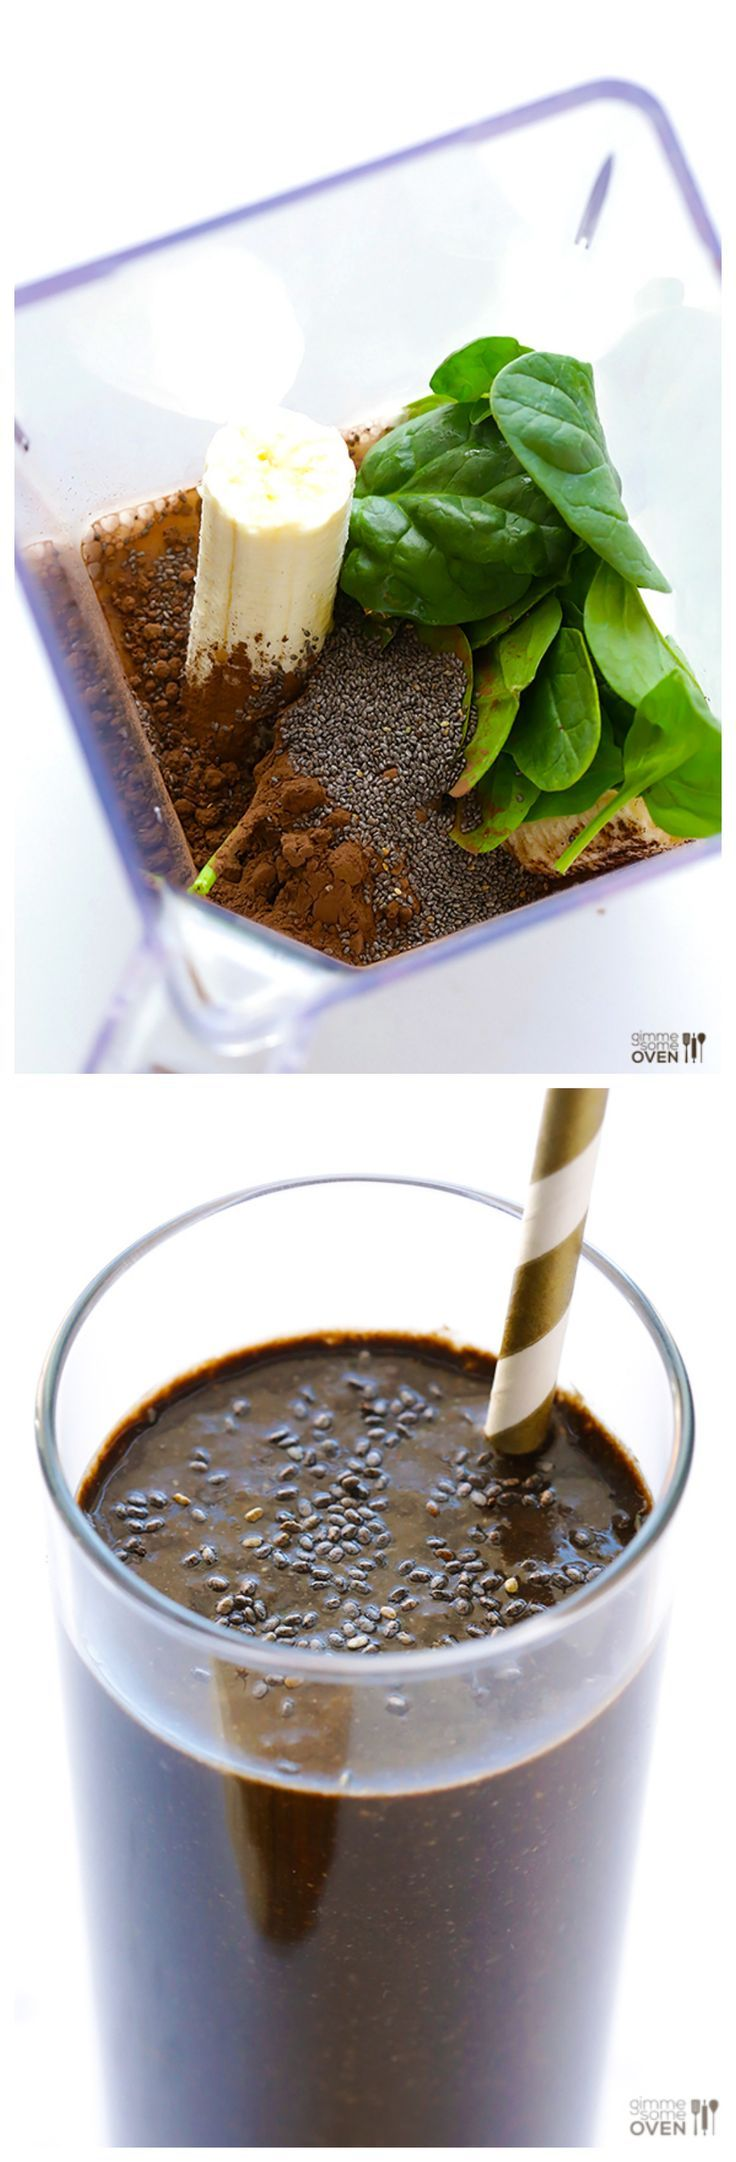 how to drink chia seeds with milk